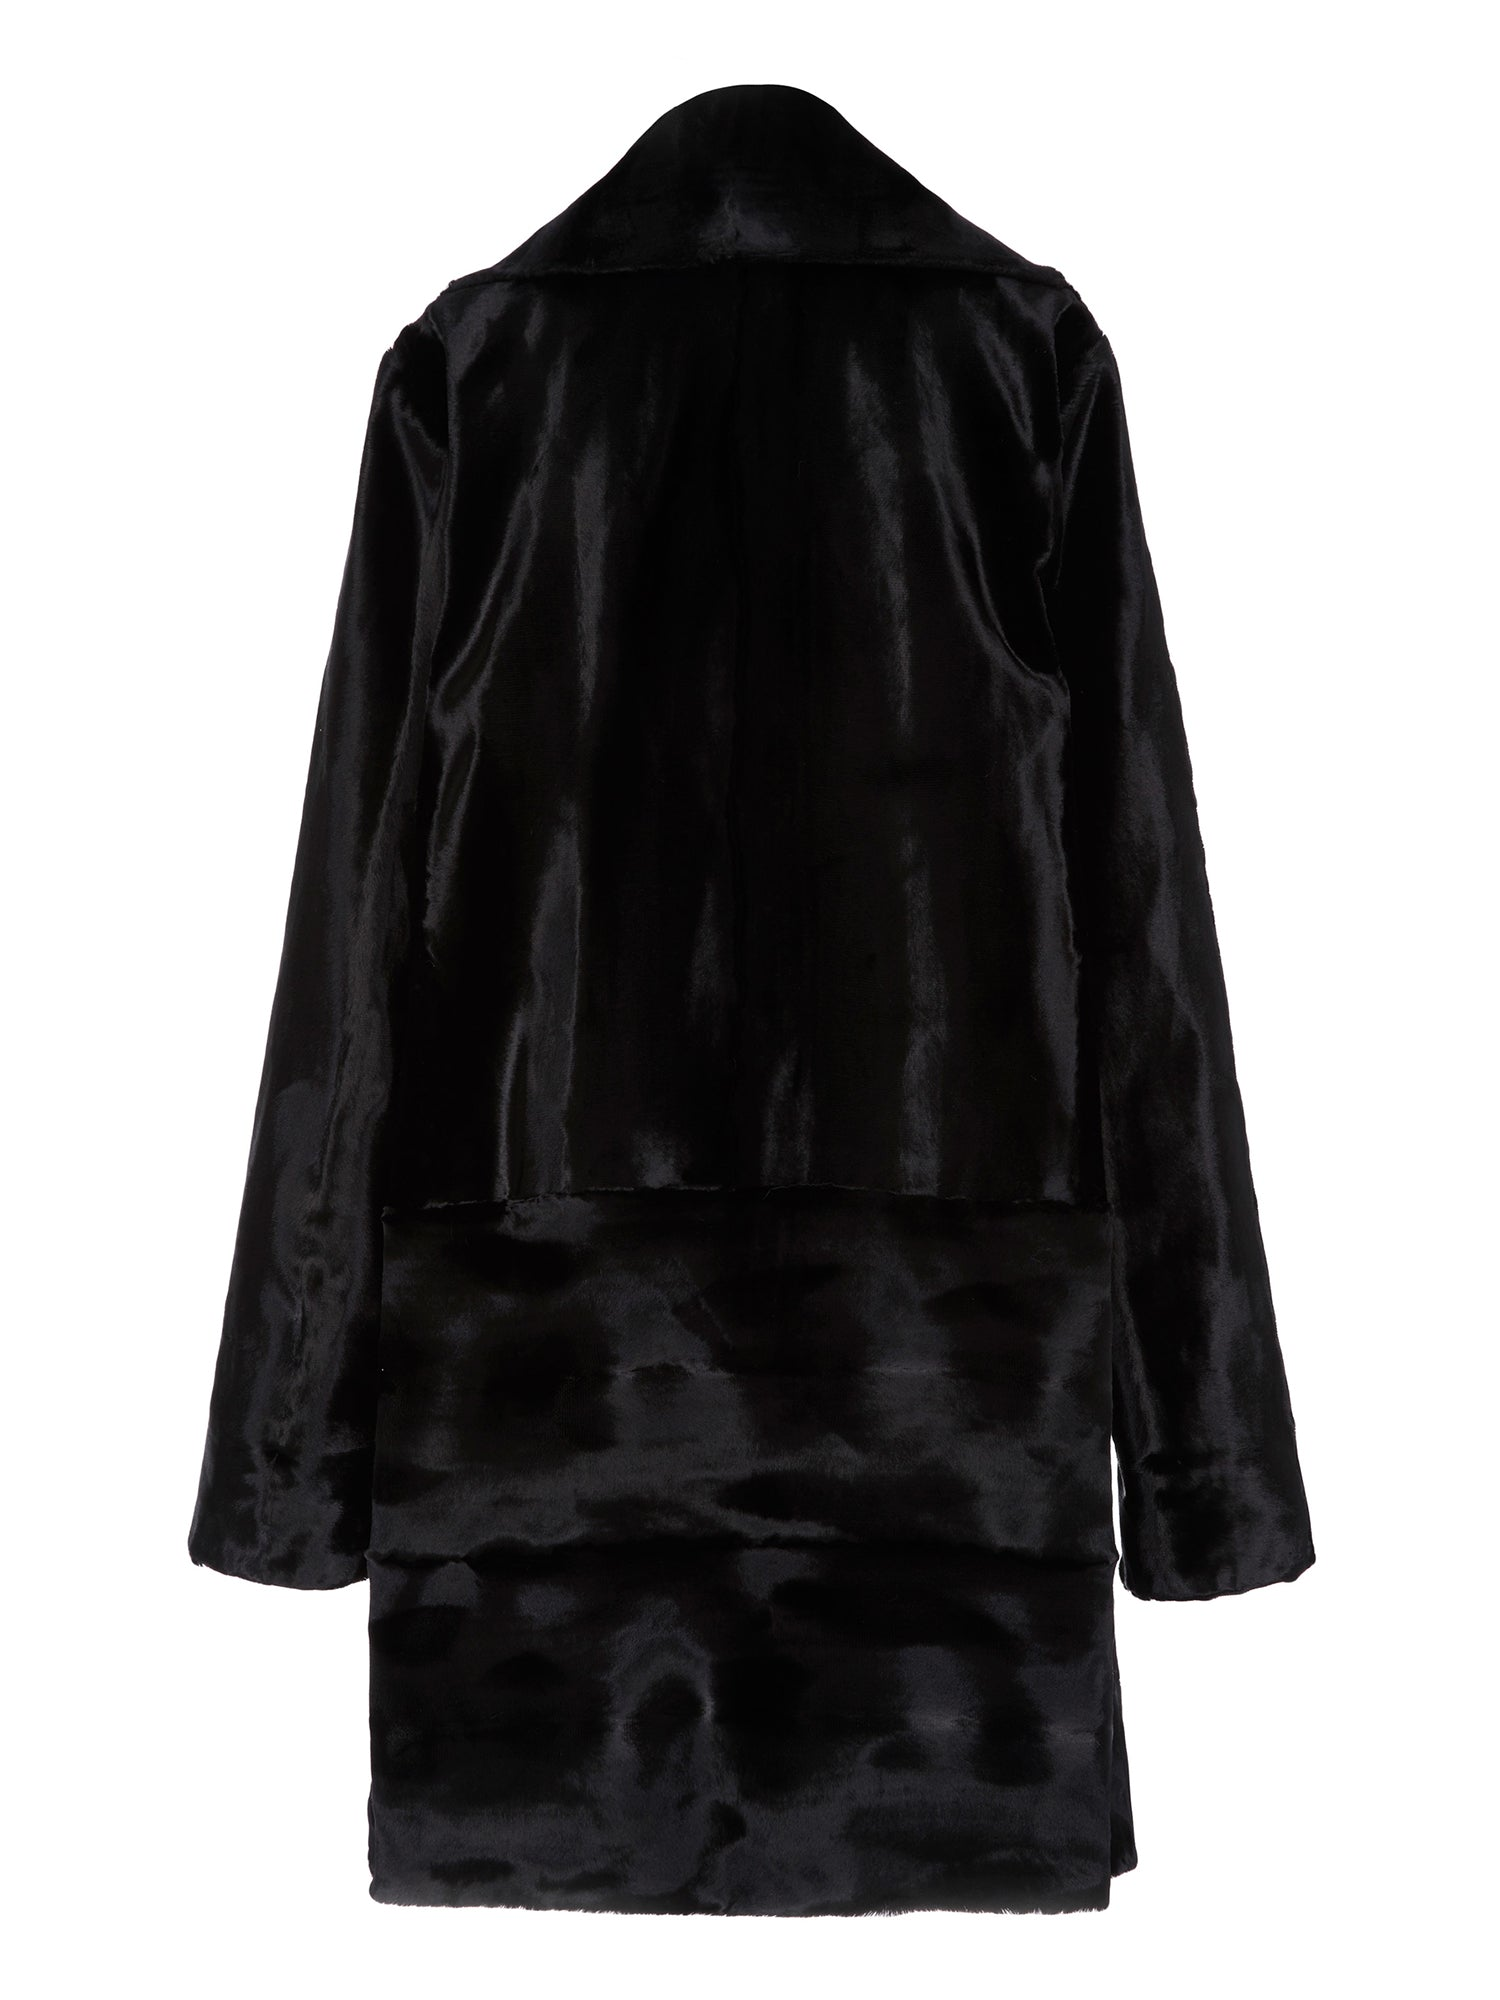 A Packshot Of Marei1998 Begonia Coat In Black Color. This Unique Design Is Crafted From Italian Velvet Texture Fabric In Lustrous Black Color. Cut In A Slight Oversized Shape, Enhanced By Deep Neckline And Dropped Shoulders, This Coat Is An Ideal Winter Piece. The Smart Silhouette And Minimalist Design Result In A Classic Signature Style. Back View.